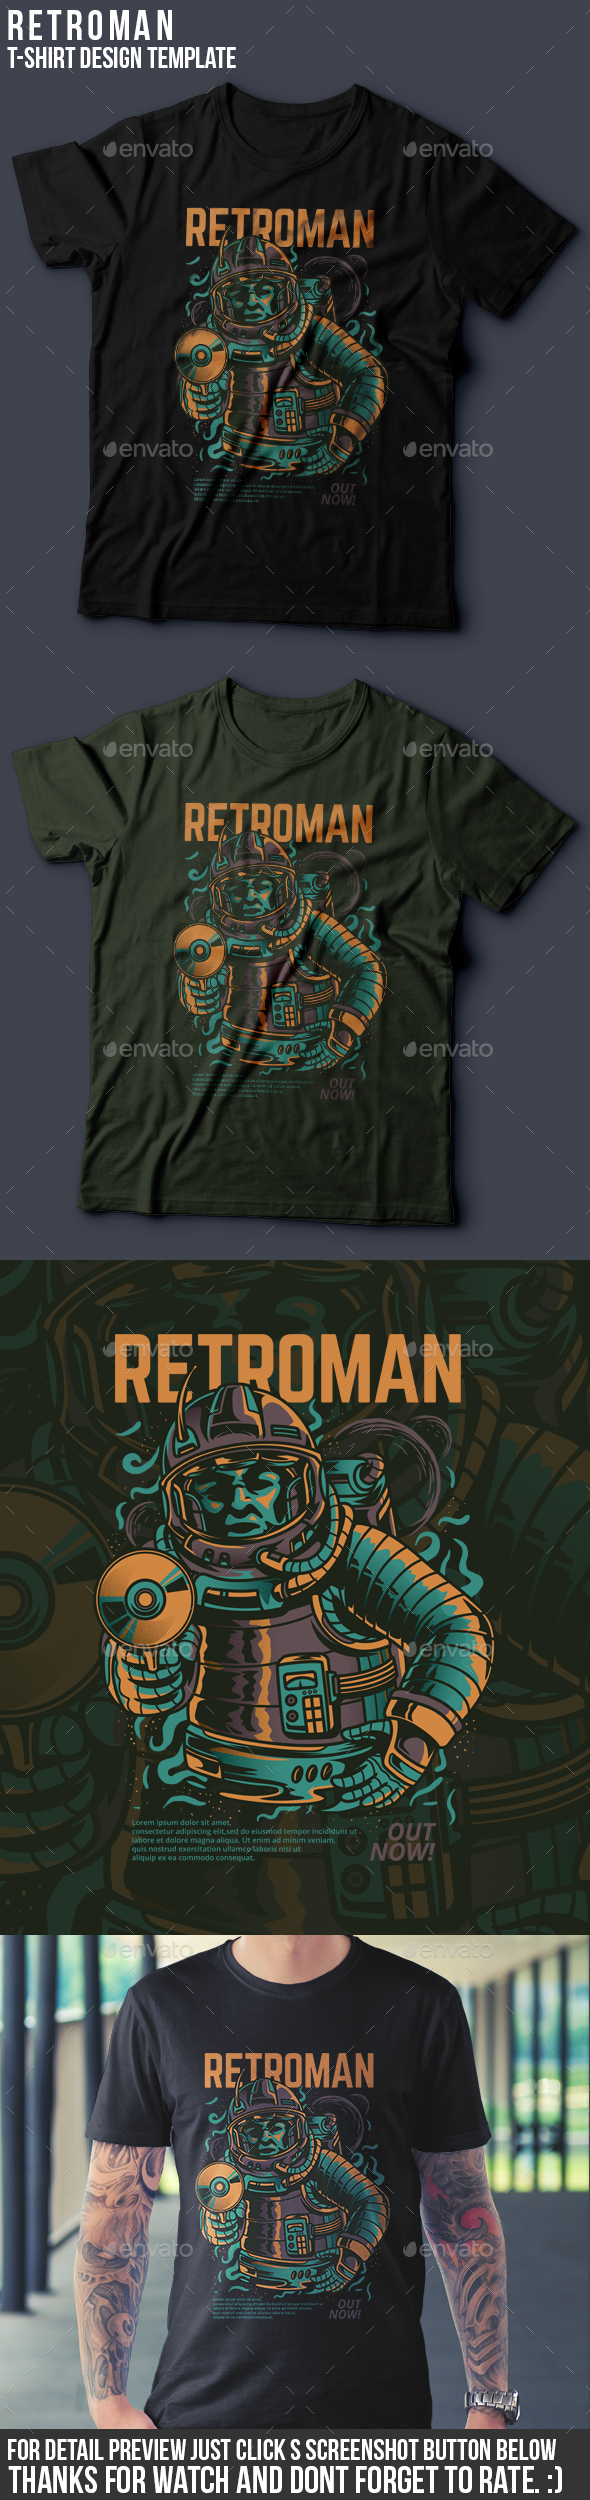 Retroman T-Shirt Design - Grunge Designs